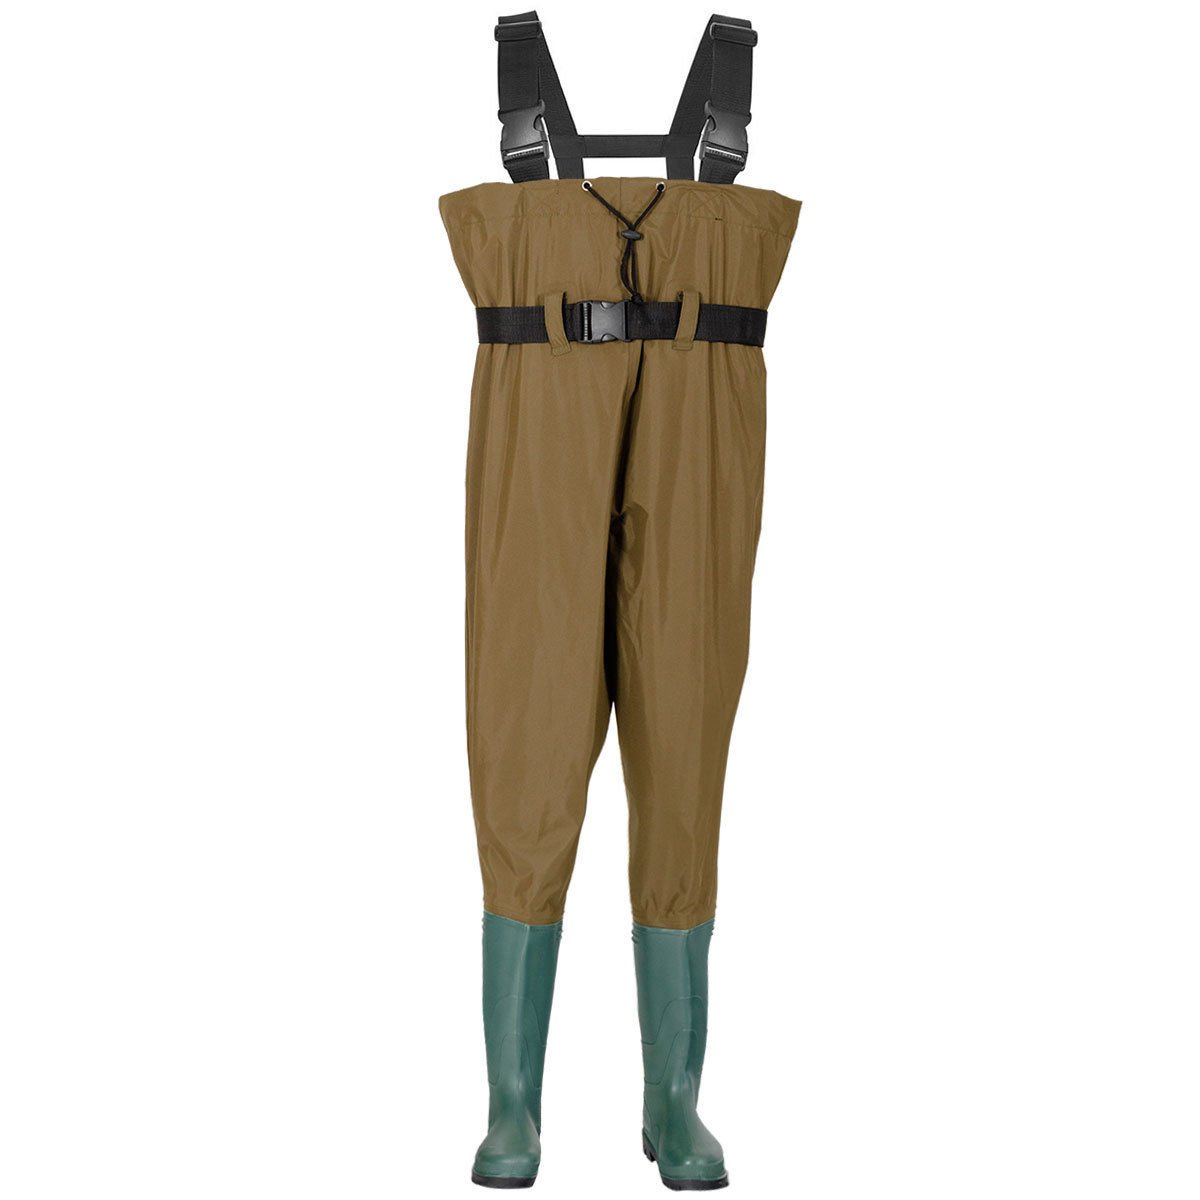 Tangkula Waterproof Chest Waders Nylon PVC Bootfoot Chest Fishing Hunting Waders Adjustable Suspenders 9 to 12